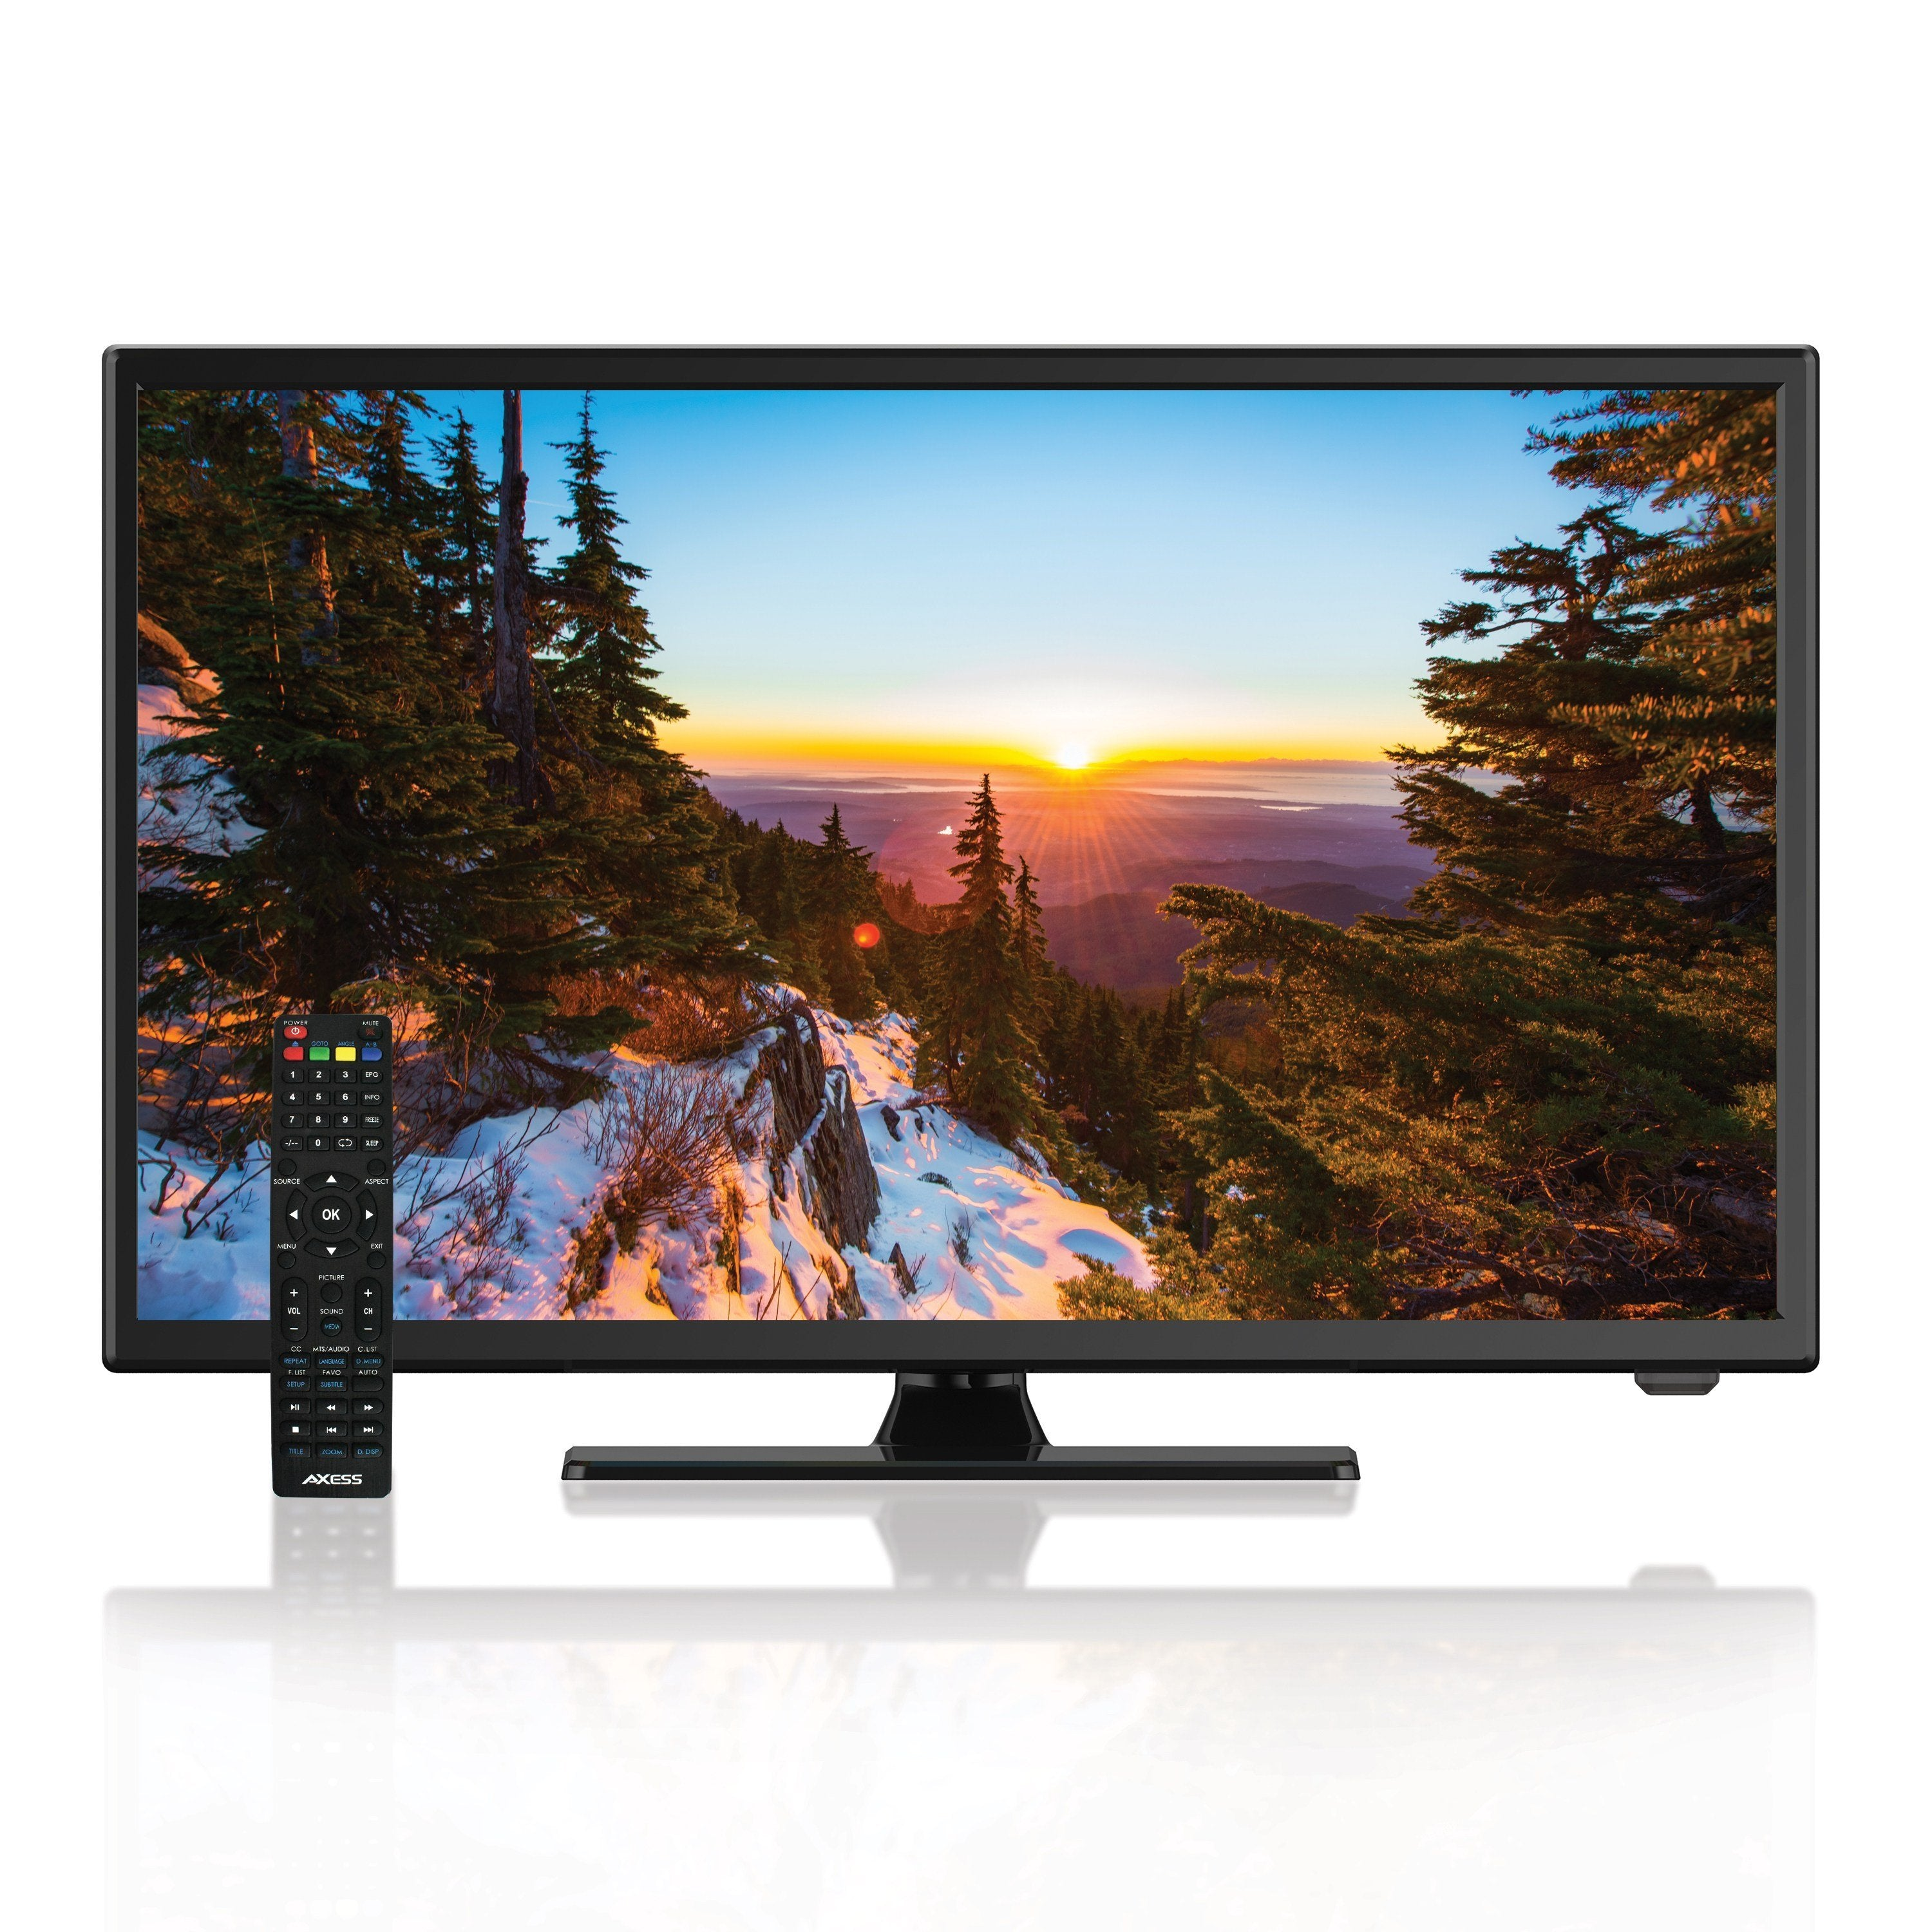 AXESS 22-Inch 1080p LED HDTV, Features 12V Car Cord Technology, VGA/HDMI/USB Inputs, Built-in DVD Player, Full Function Remote  (TVD1805-22)